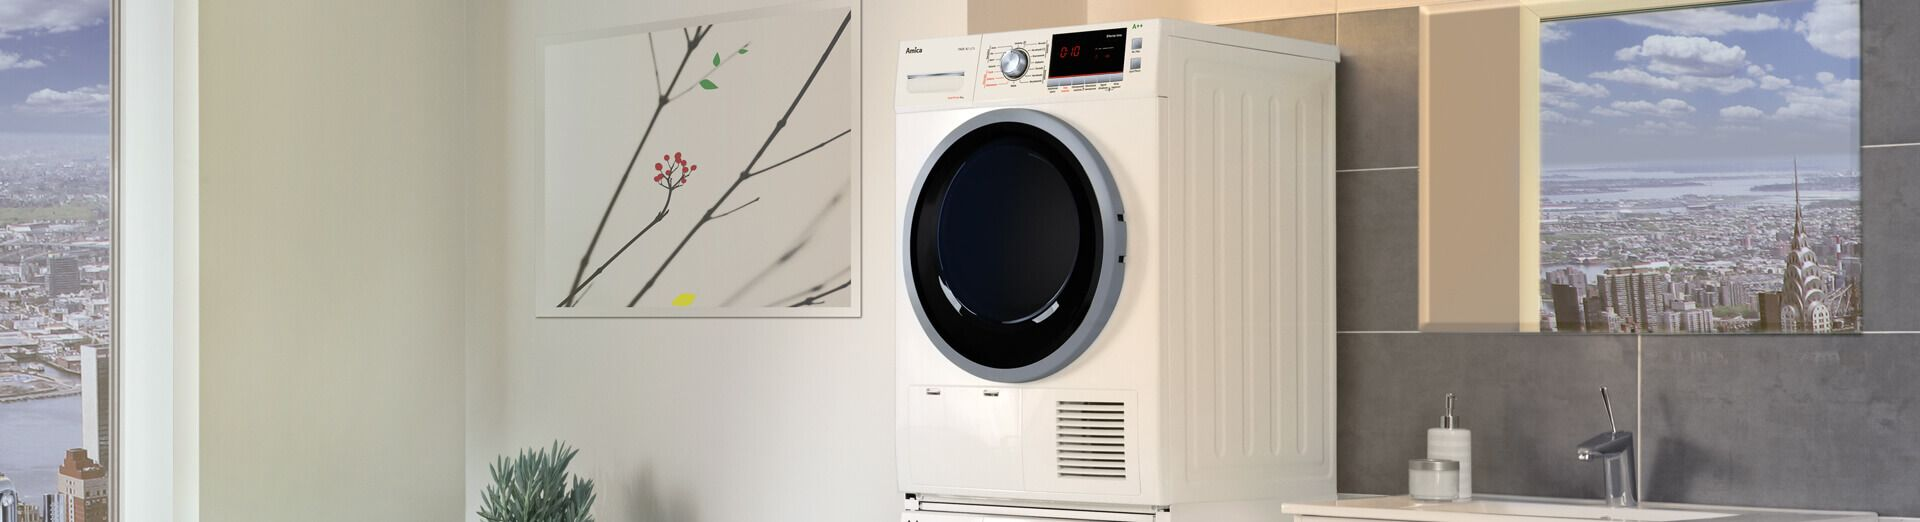 Freestanding tumble dryer top image